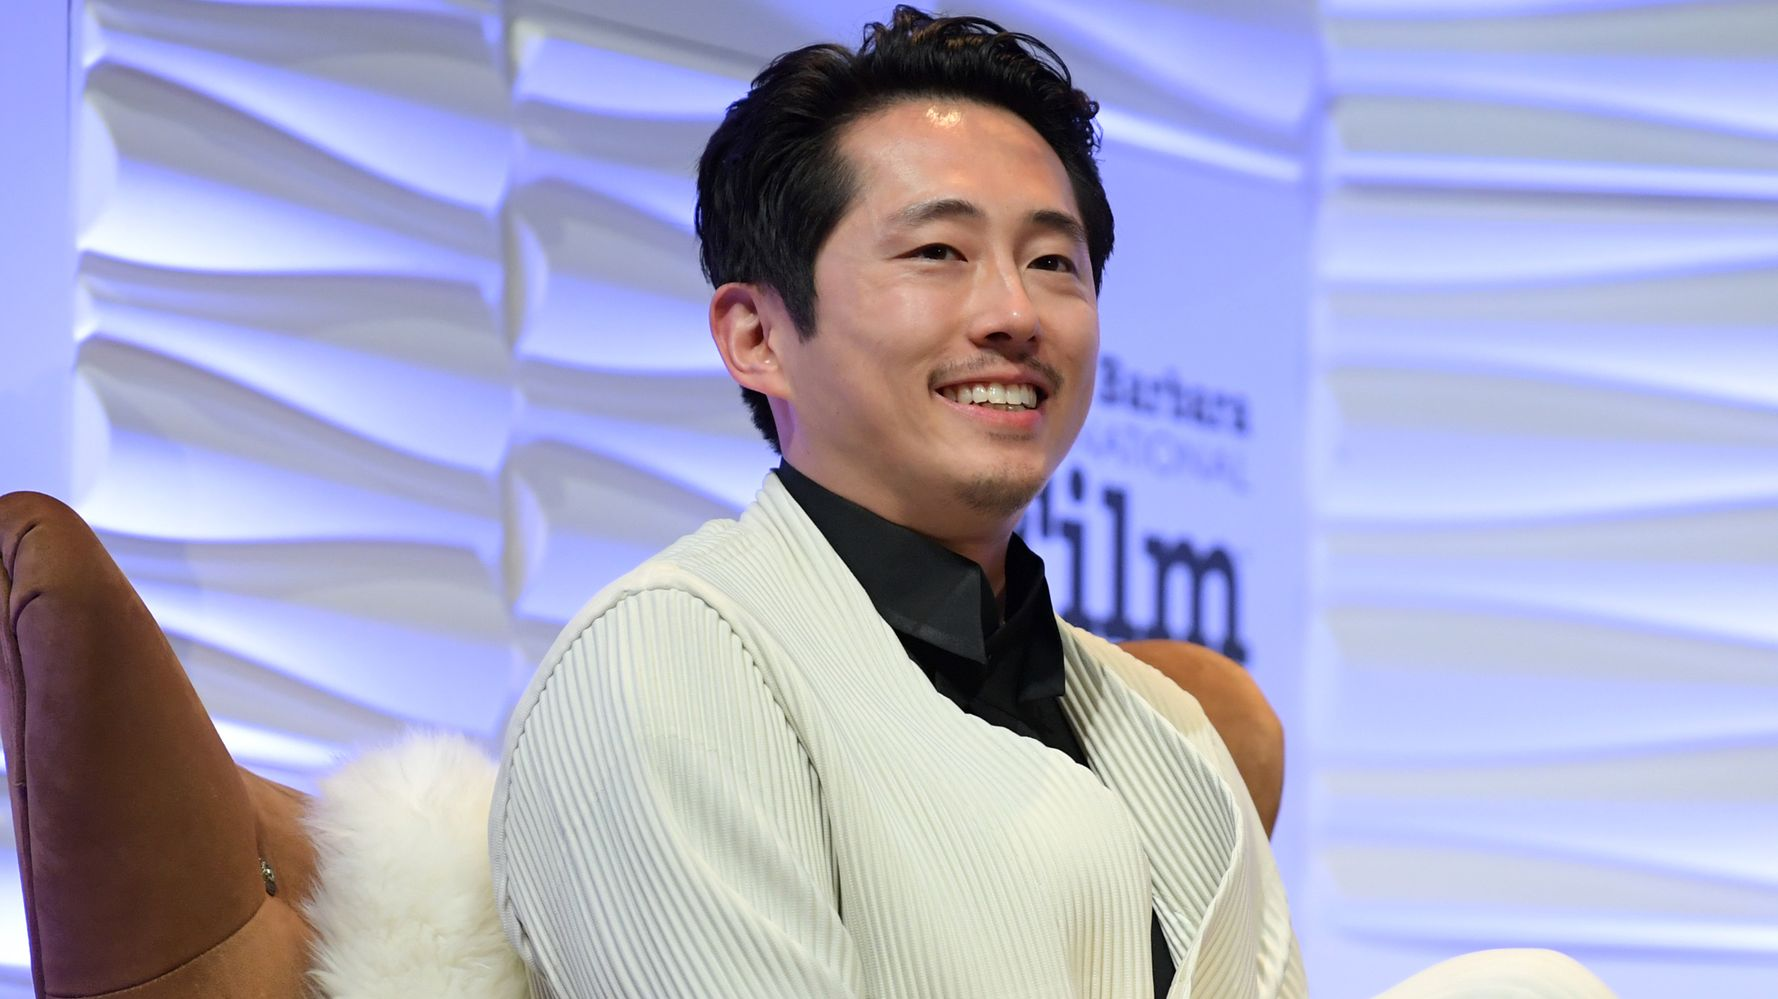 Steven Yeun Says 'Walking Dead' Did Not Prepare Him For COVID-19 Pandemic